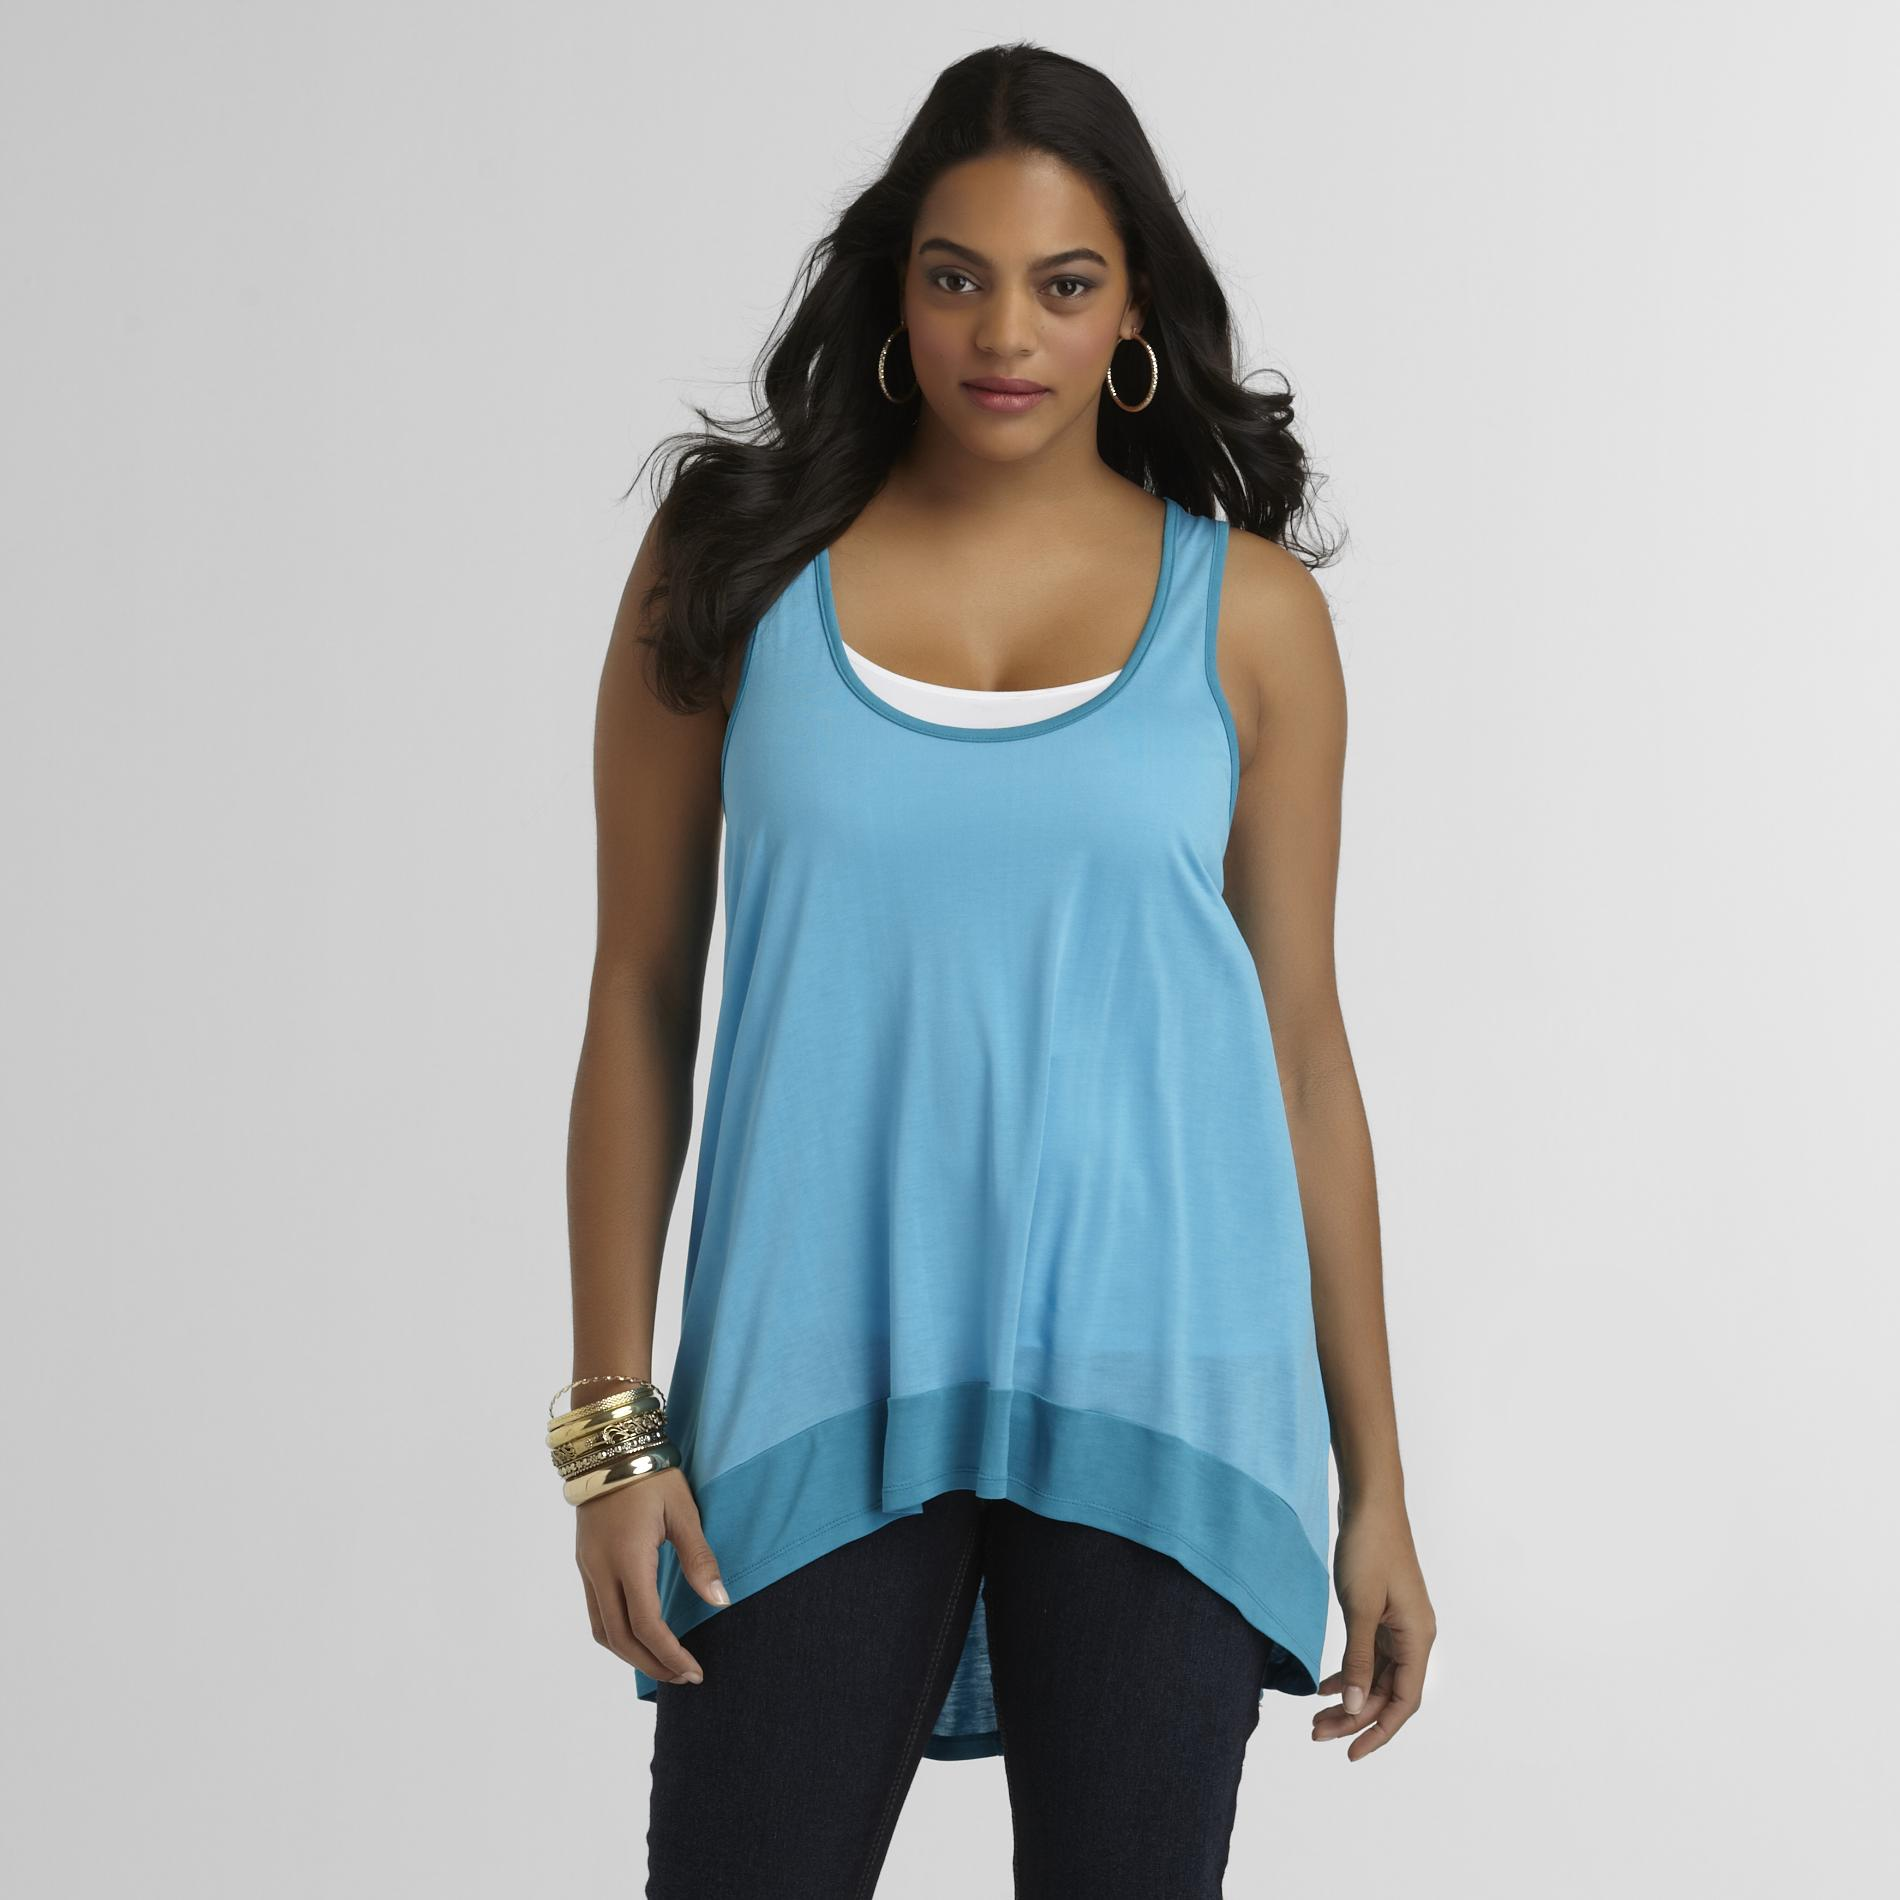 Love Your Style, Love Your Size Women's Plus High-Low Top - Colorblock at Kmart.com